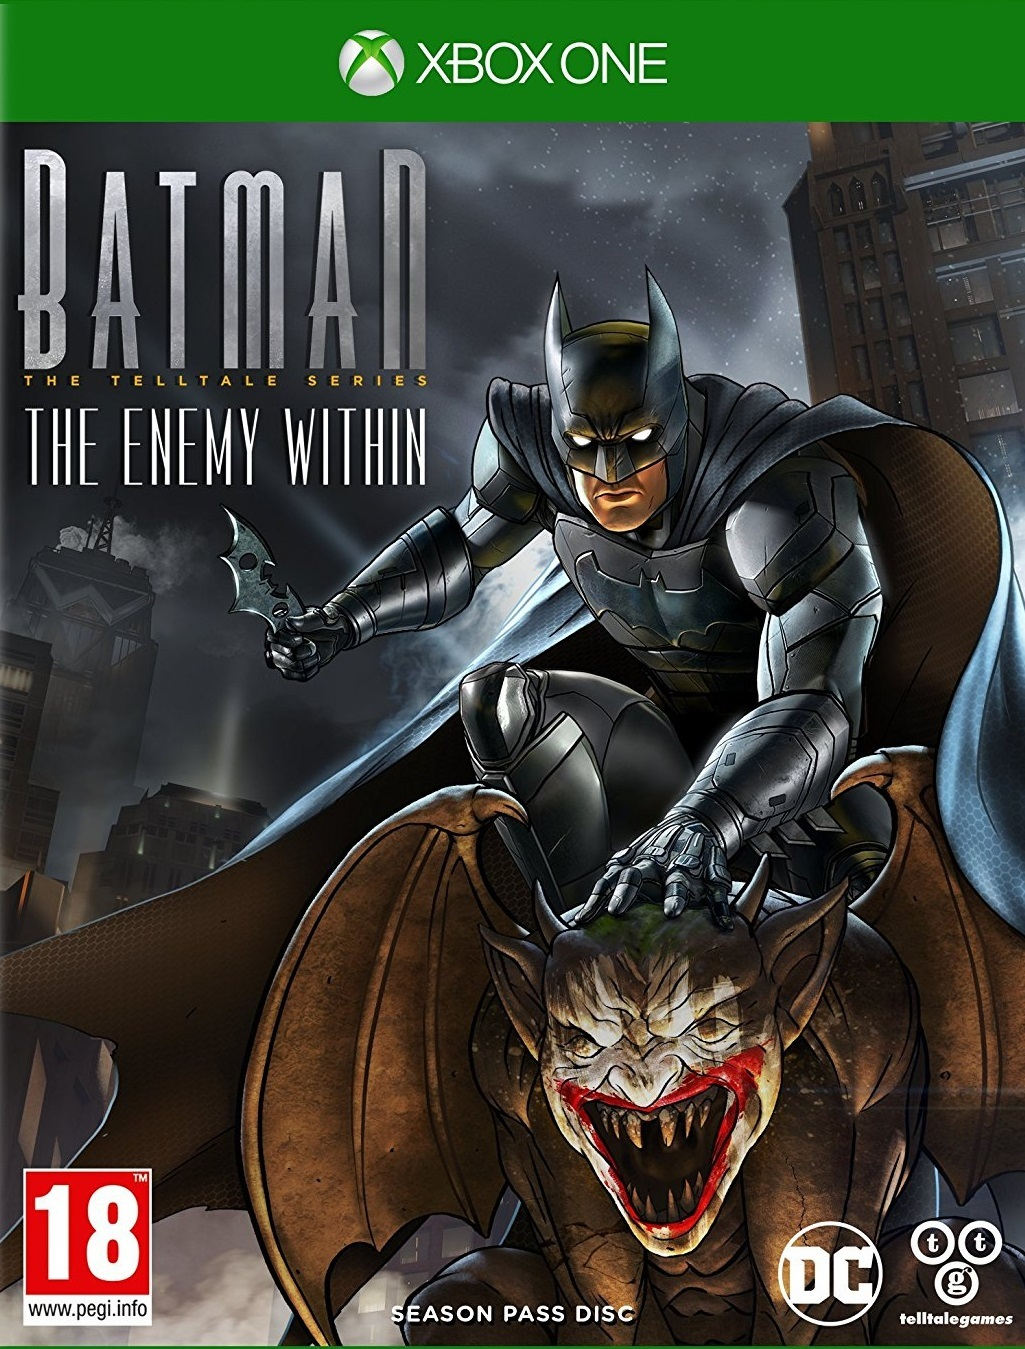 Batman: The Telltale Series - The Enemy Within for Xbox One image